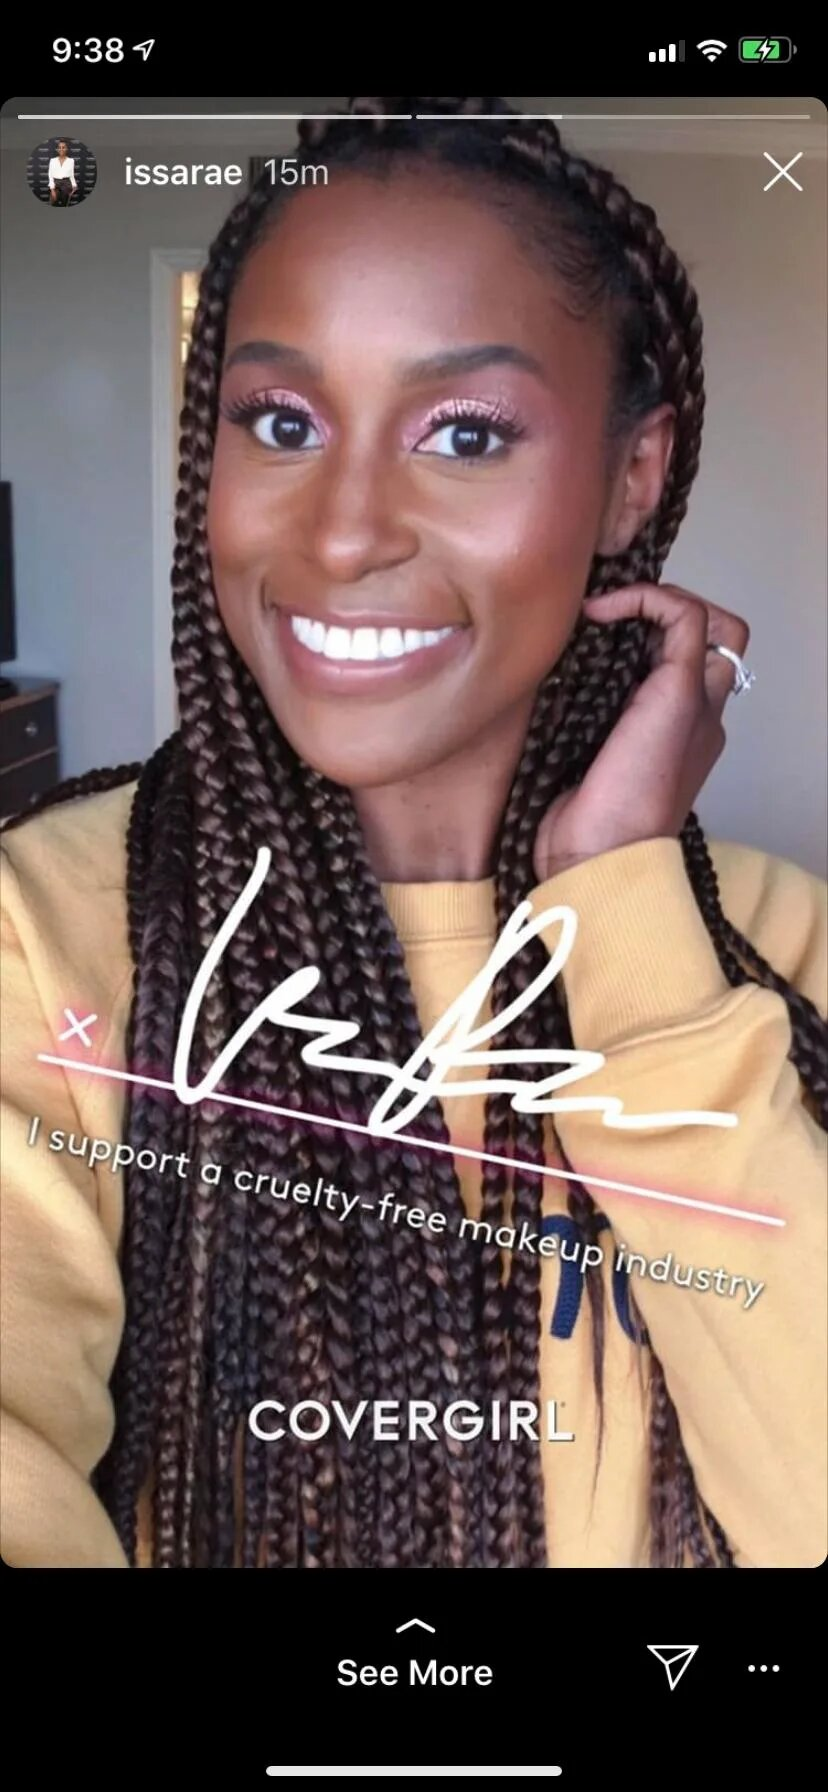 jaiyeorie + Engagement Rumours trails Issa Rae's Essence Cover + her fiance